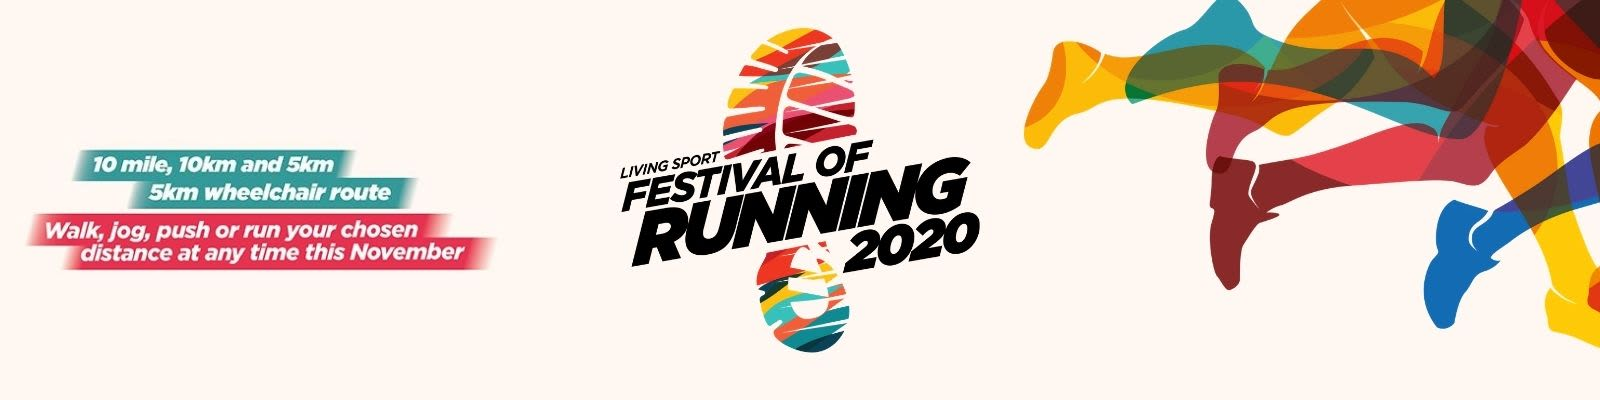 Living Sport Festival of Running 2020